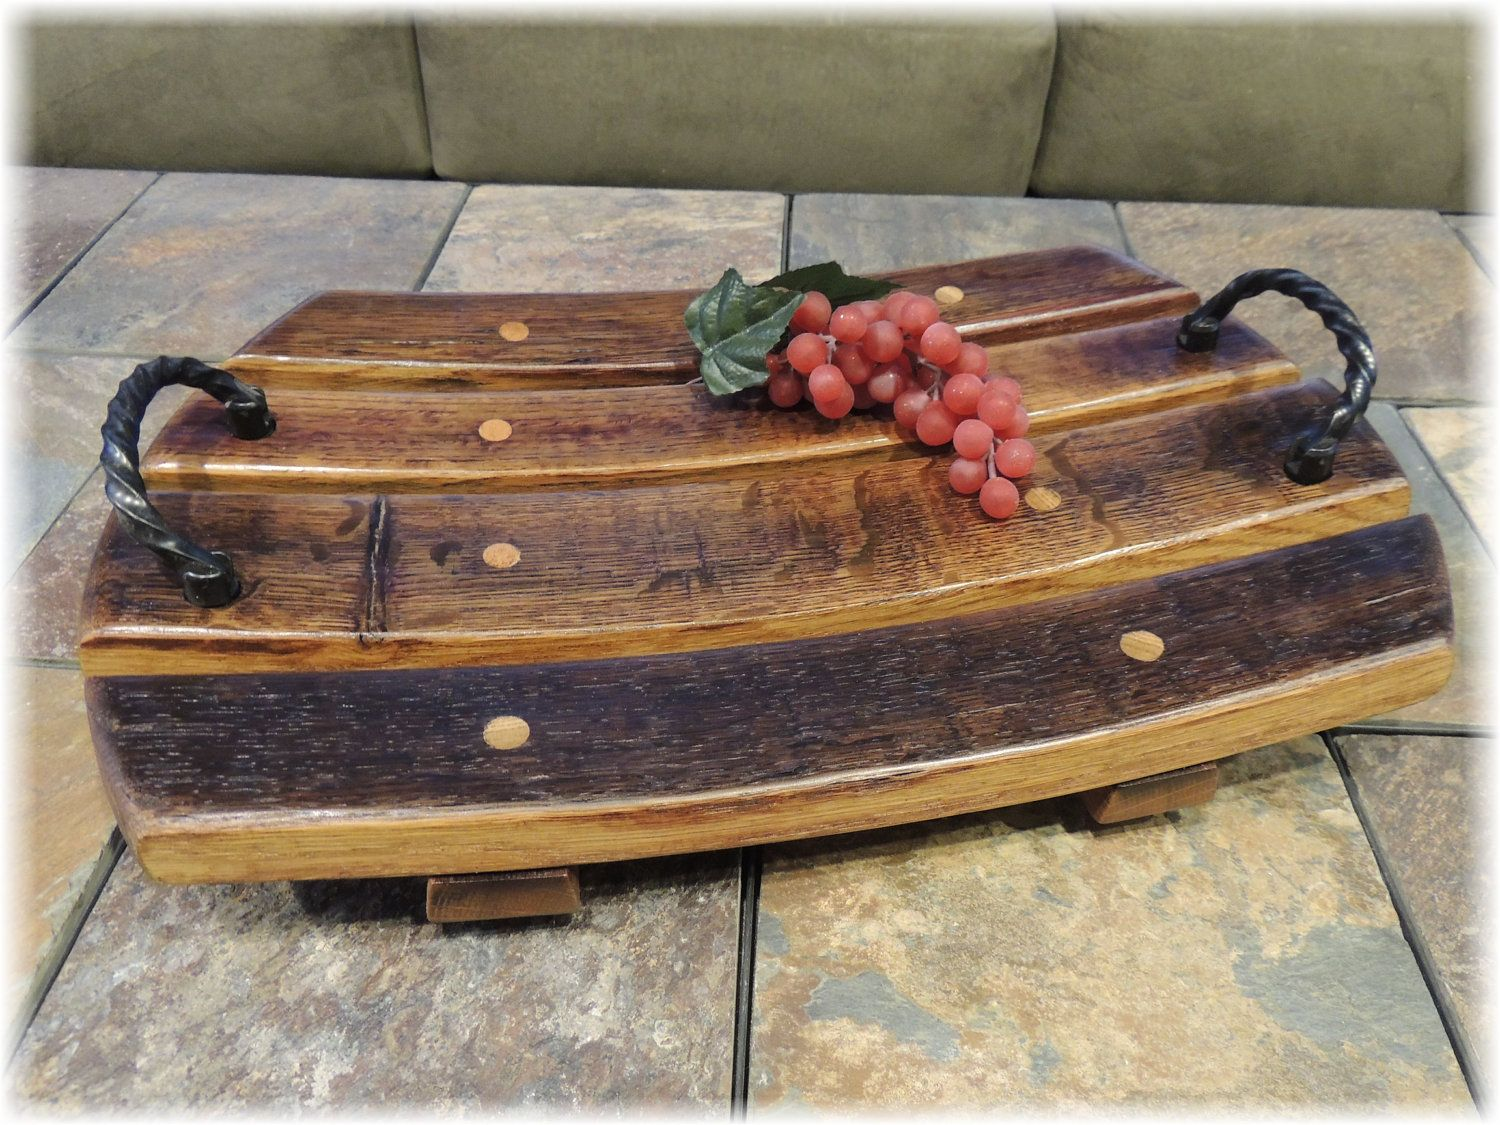 used wine barrel furniture. Wood Platter Is Made From The Staves Of A Recycled Wine Barrel. It Can Be Used To Display Fruit, Cheeses, Or Just Centre Piece On Coffee Table. Barrel Furniture